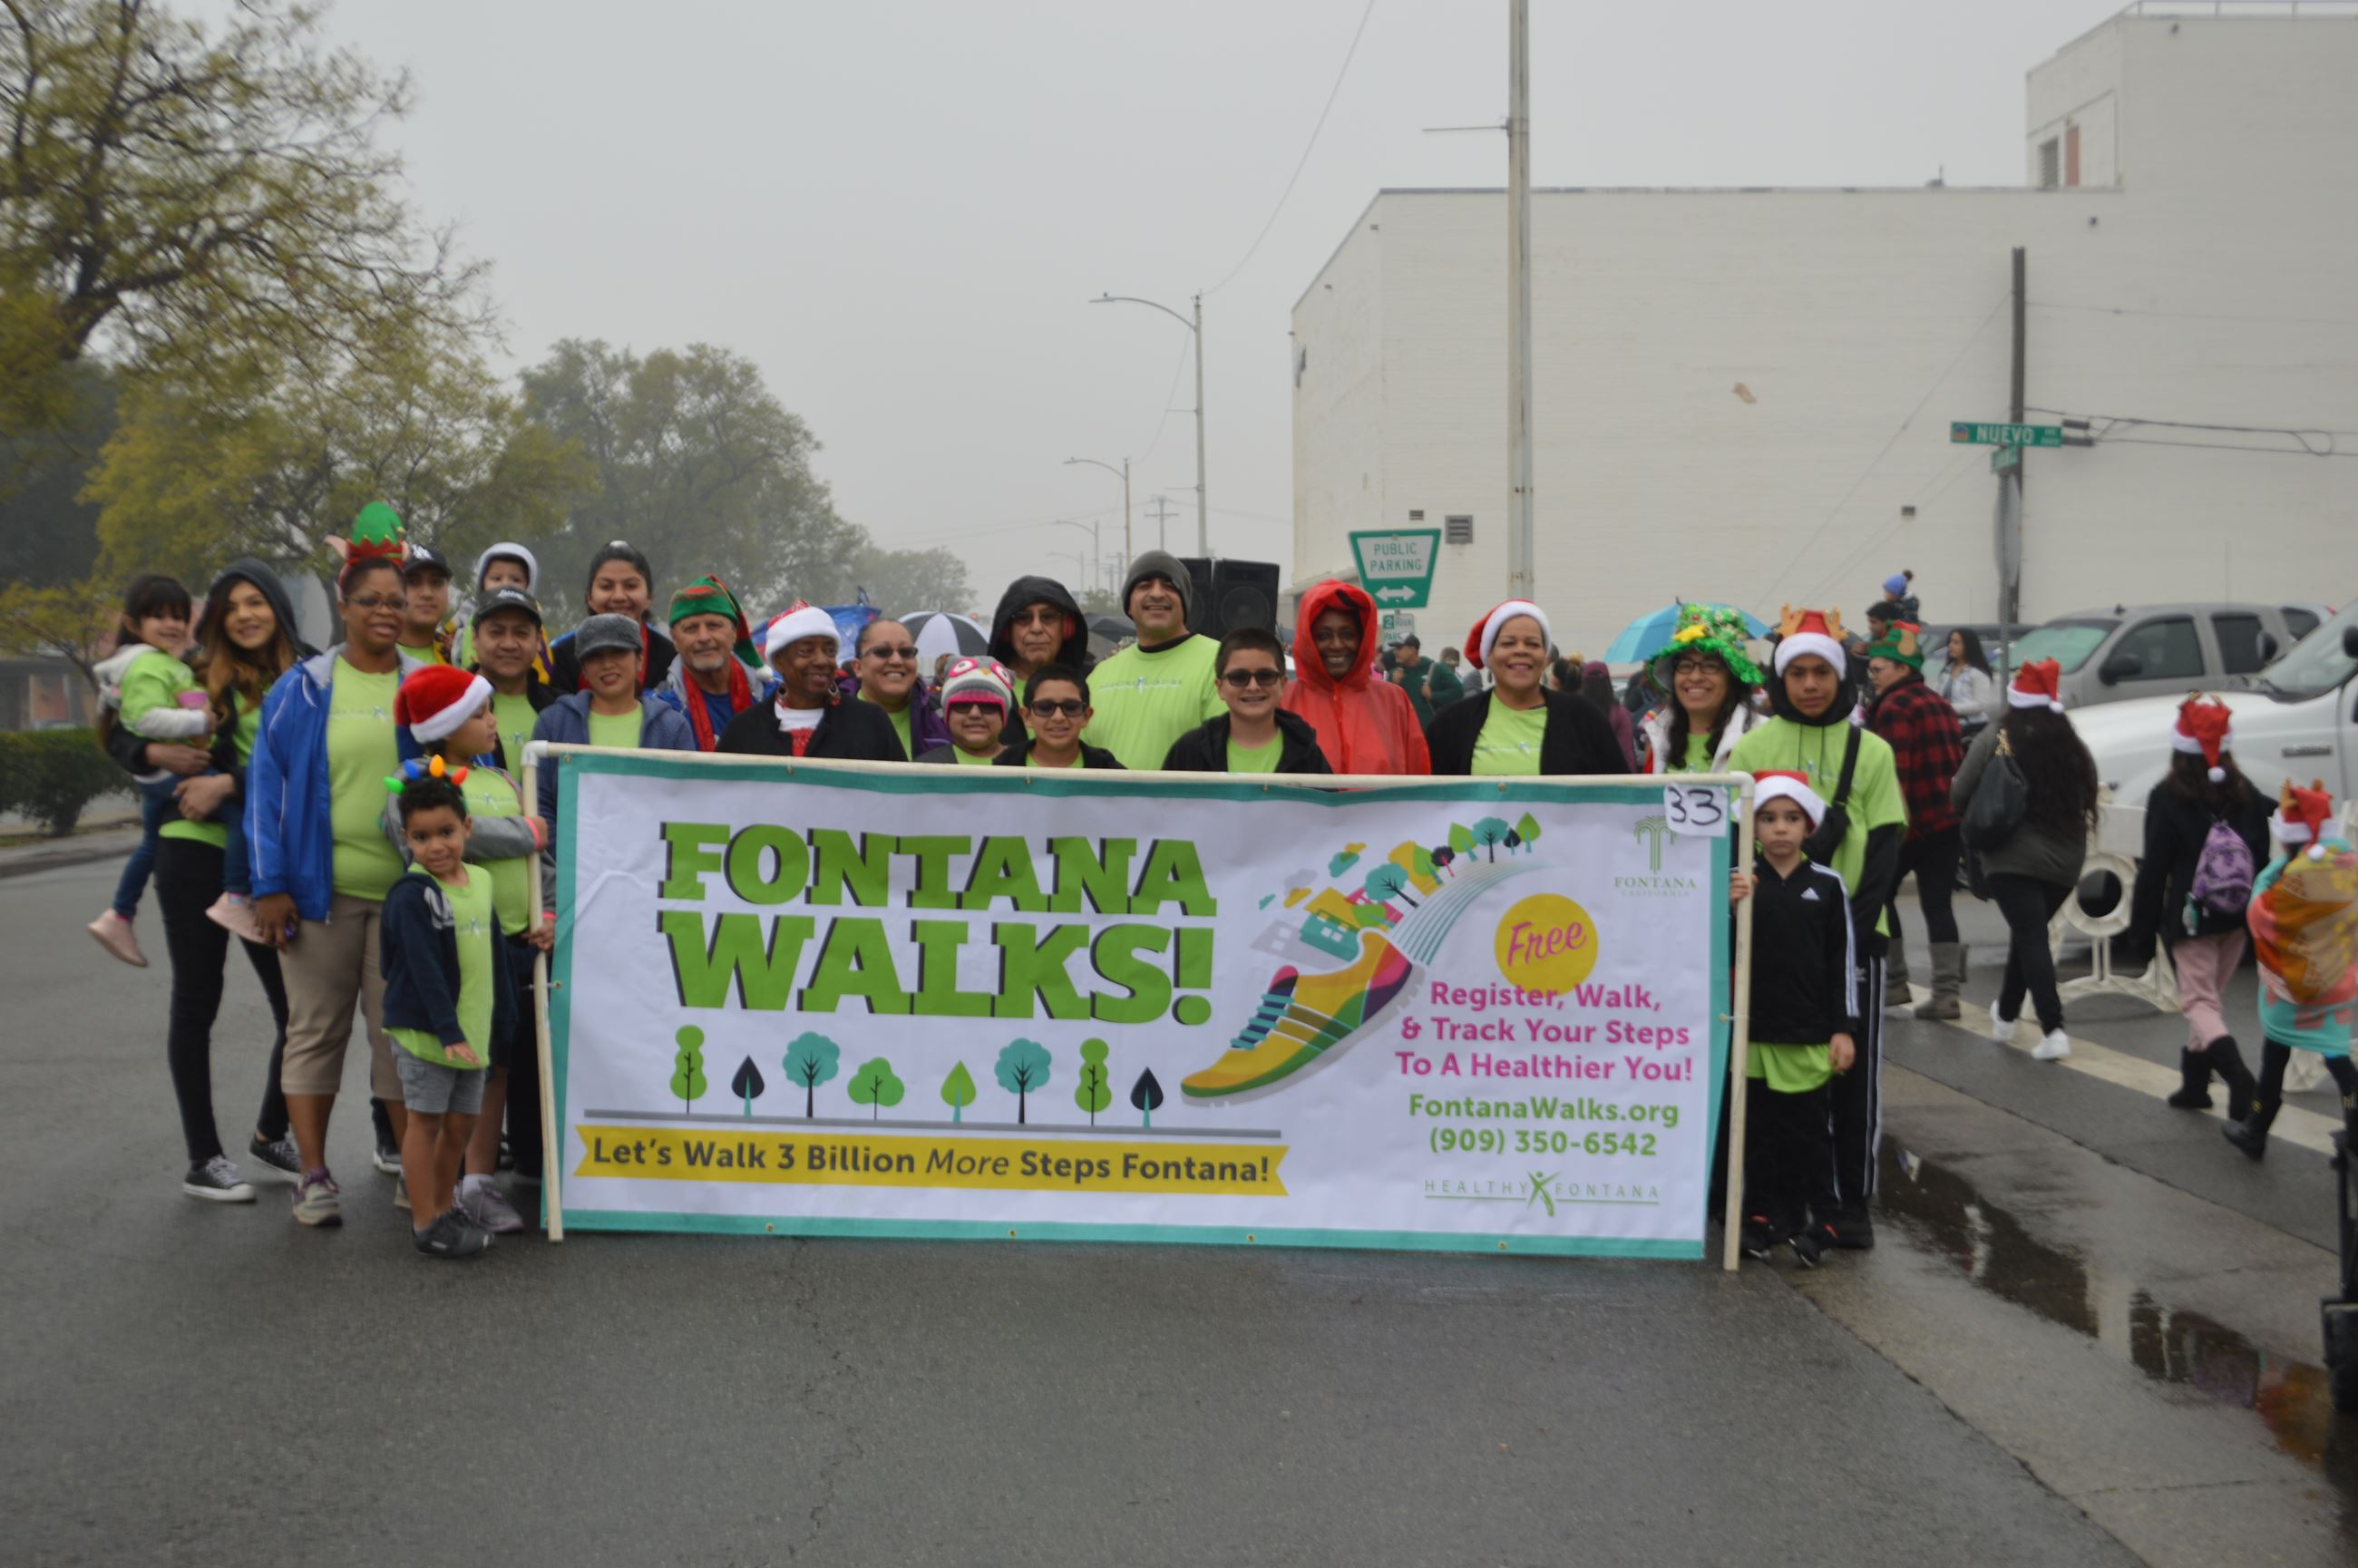 Group holds Fontana Walks banner on rainy day